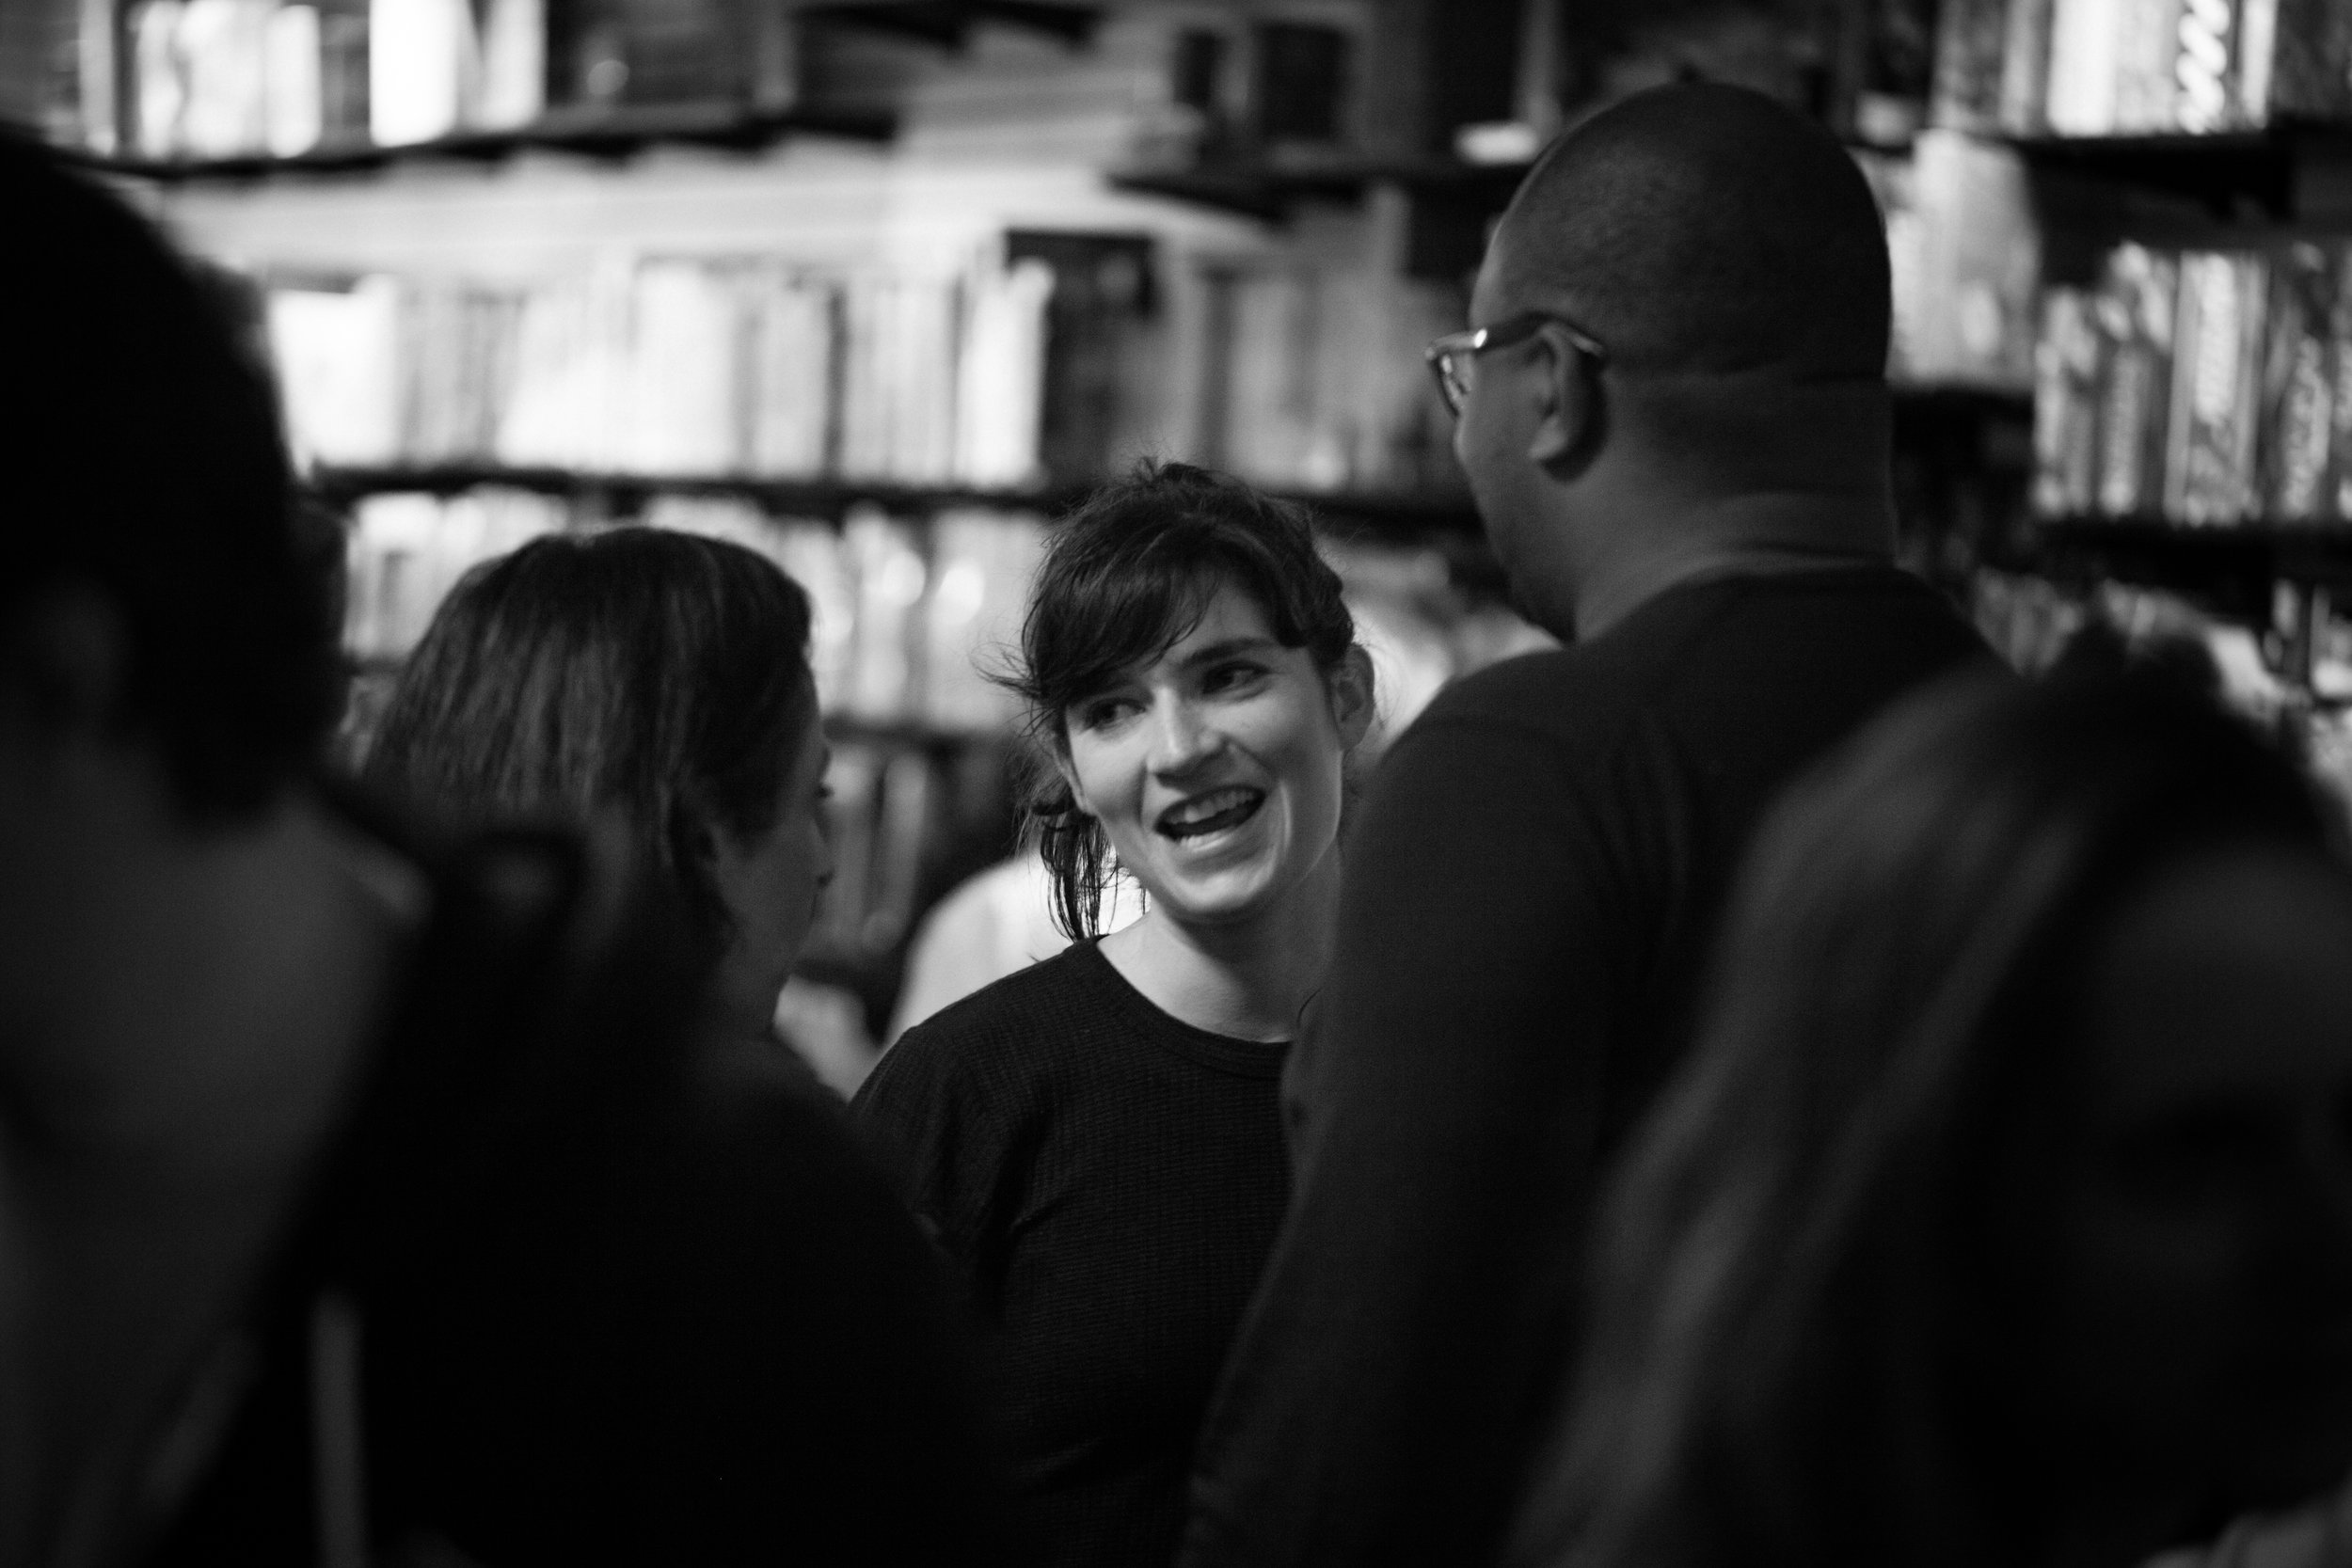 Playwright Liba Vaynberg with audience members after the reading. Photo by Katherine Oostman.